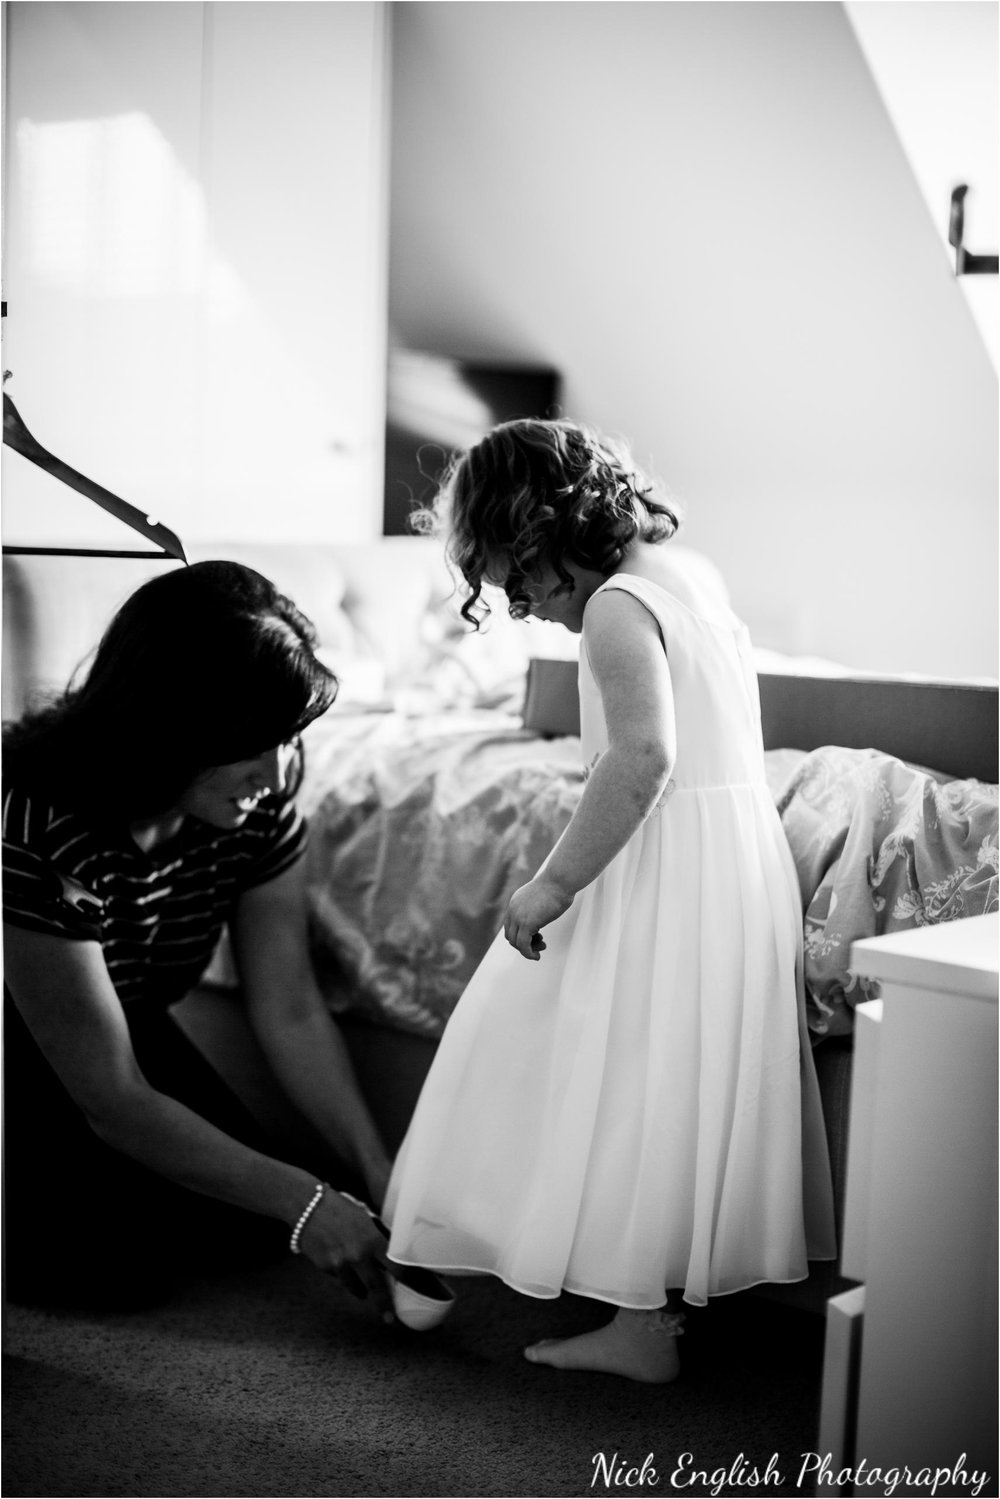 Stacey-Ash-Wedding-Photographs-Stanley-House-Preston-Lancashire-30.jpg